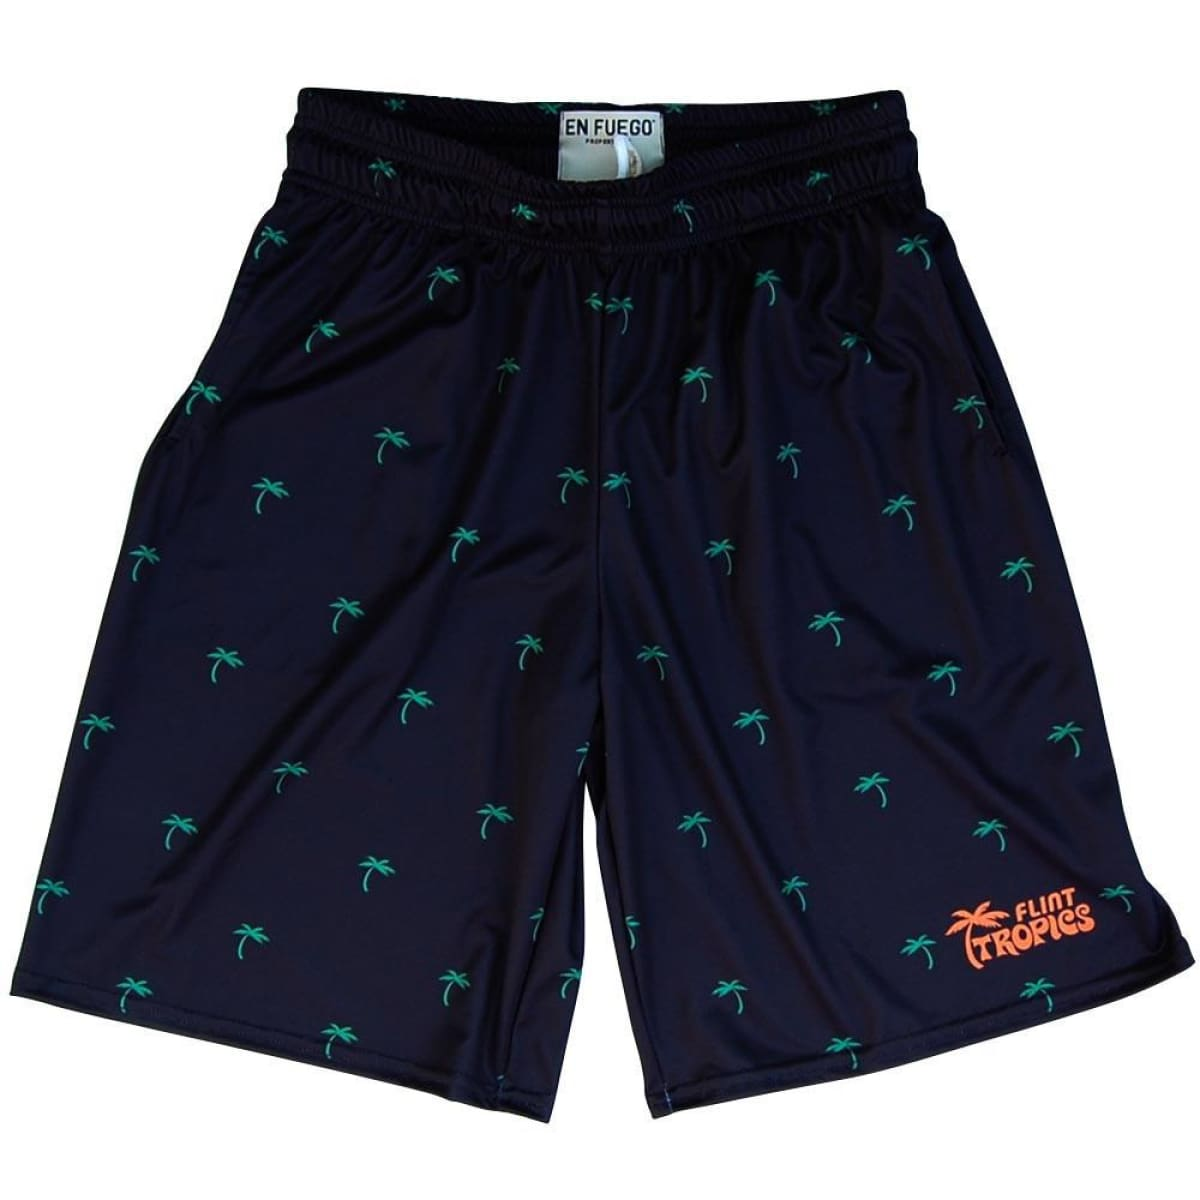 Flint Tropics Palms Basketball Shorts - black / Youth X-Small - Basketball Shorts